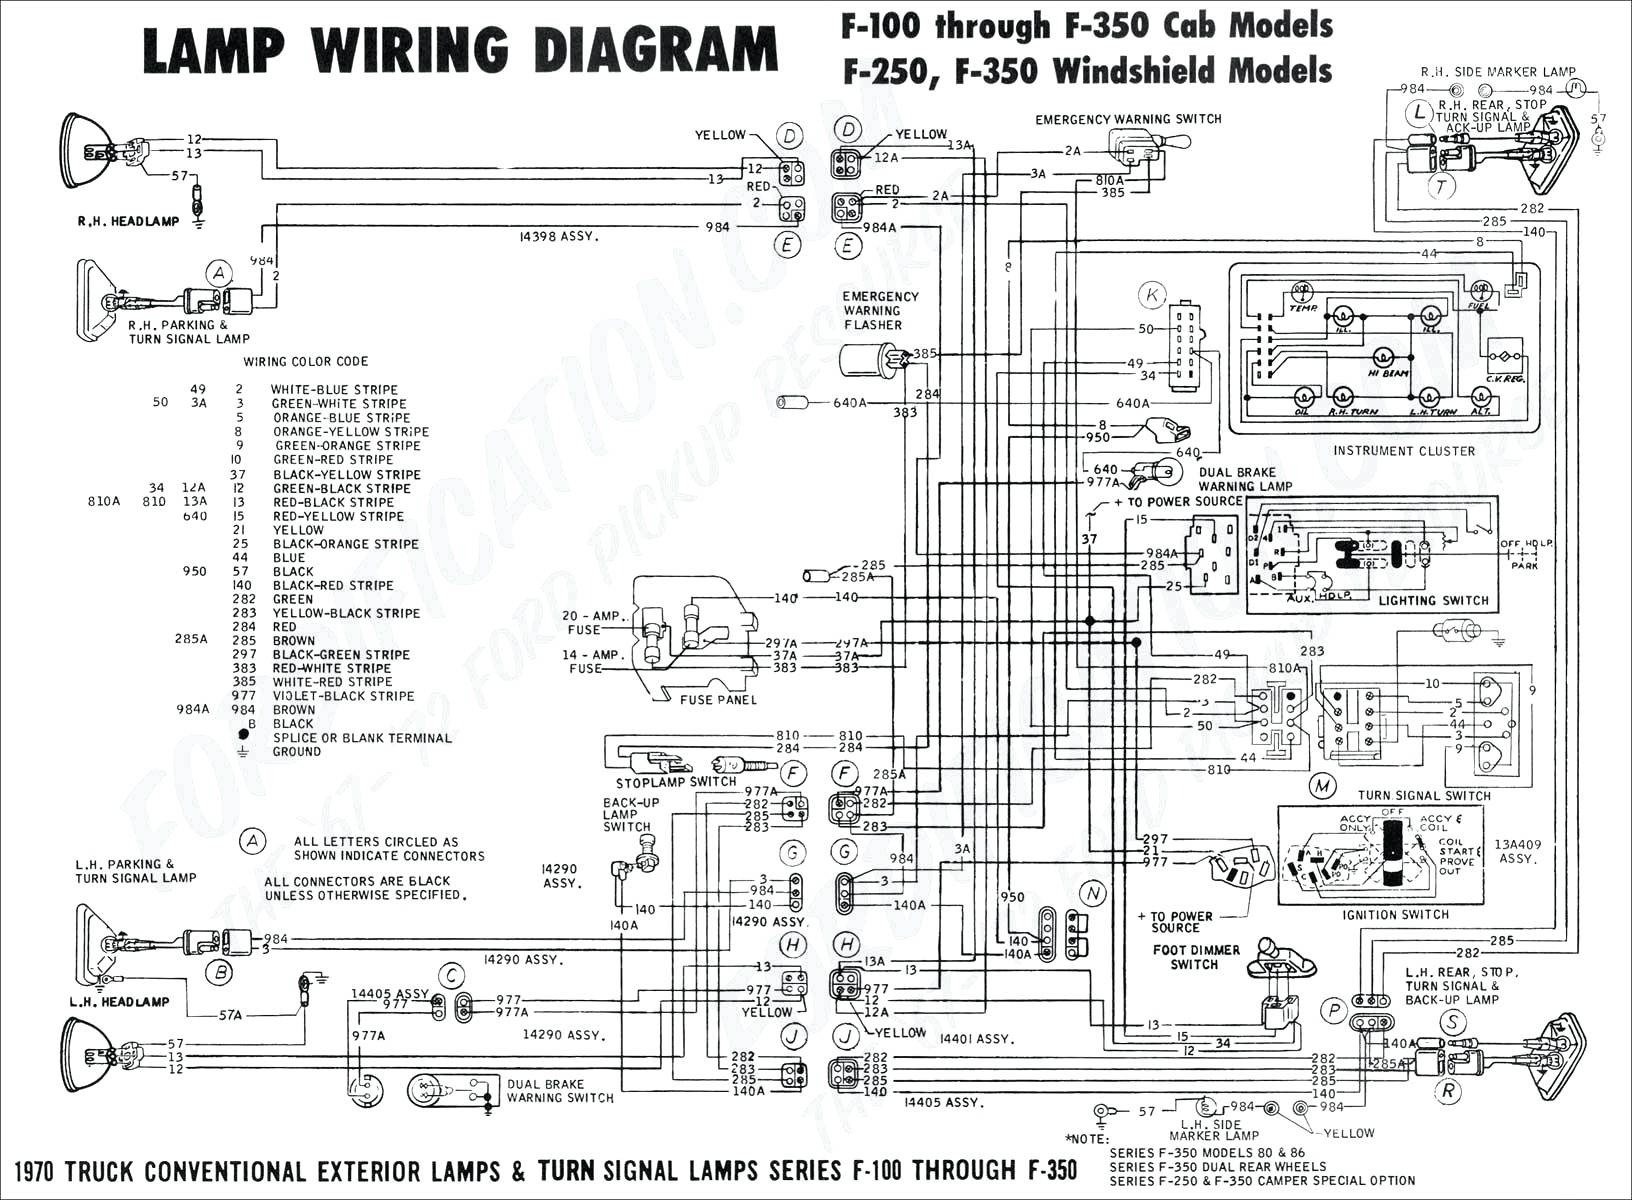 indeeco electric heater wiring diagram free download wiring diagram